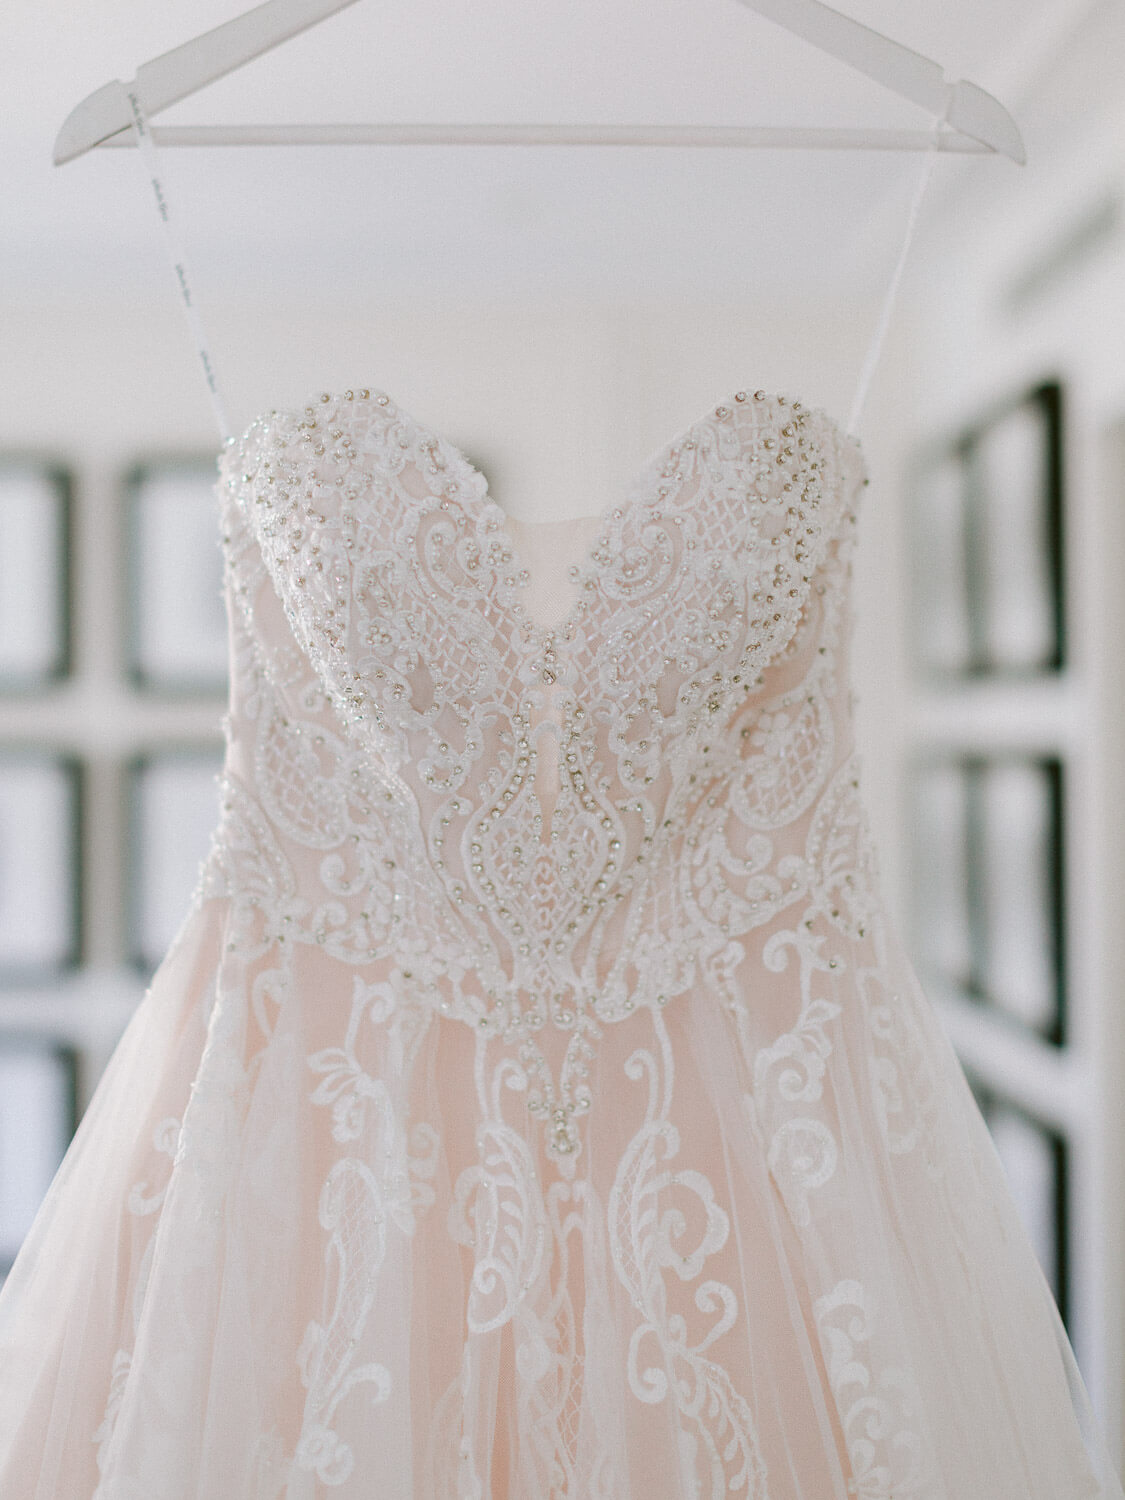 wedding gown ornamented bodice detail on a wedding in Sintra by Portugal Wedding Photographer